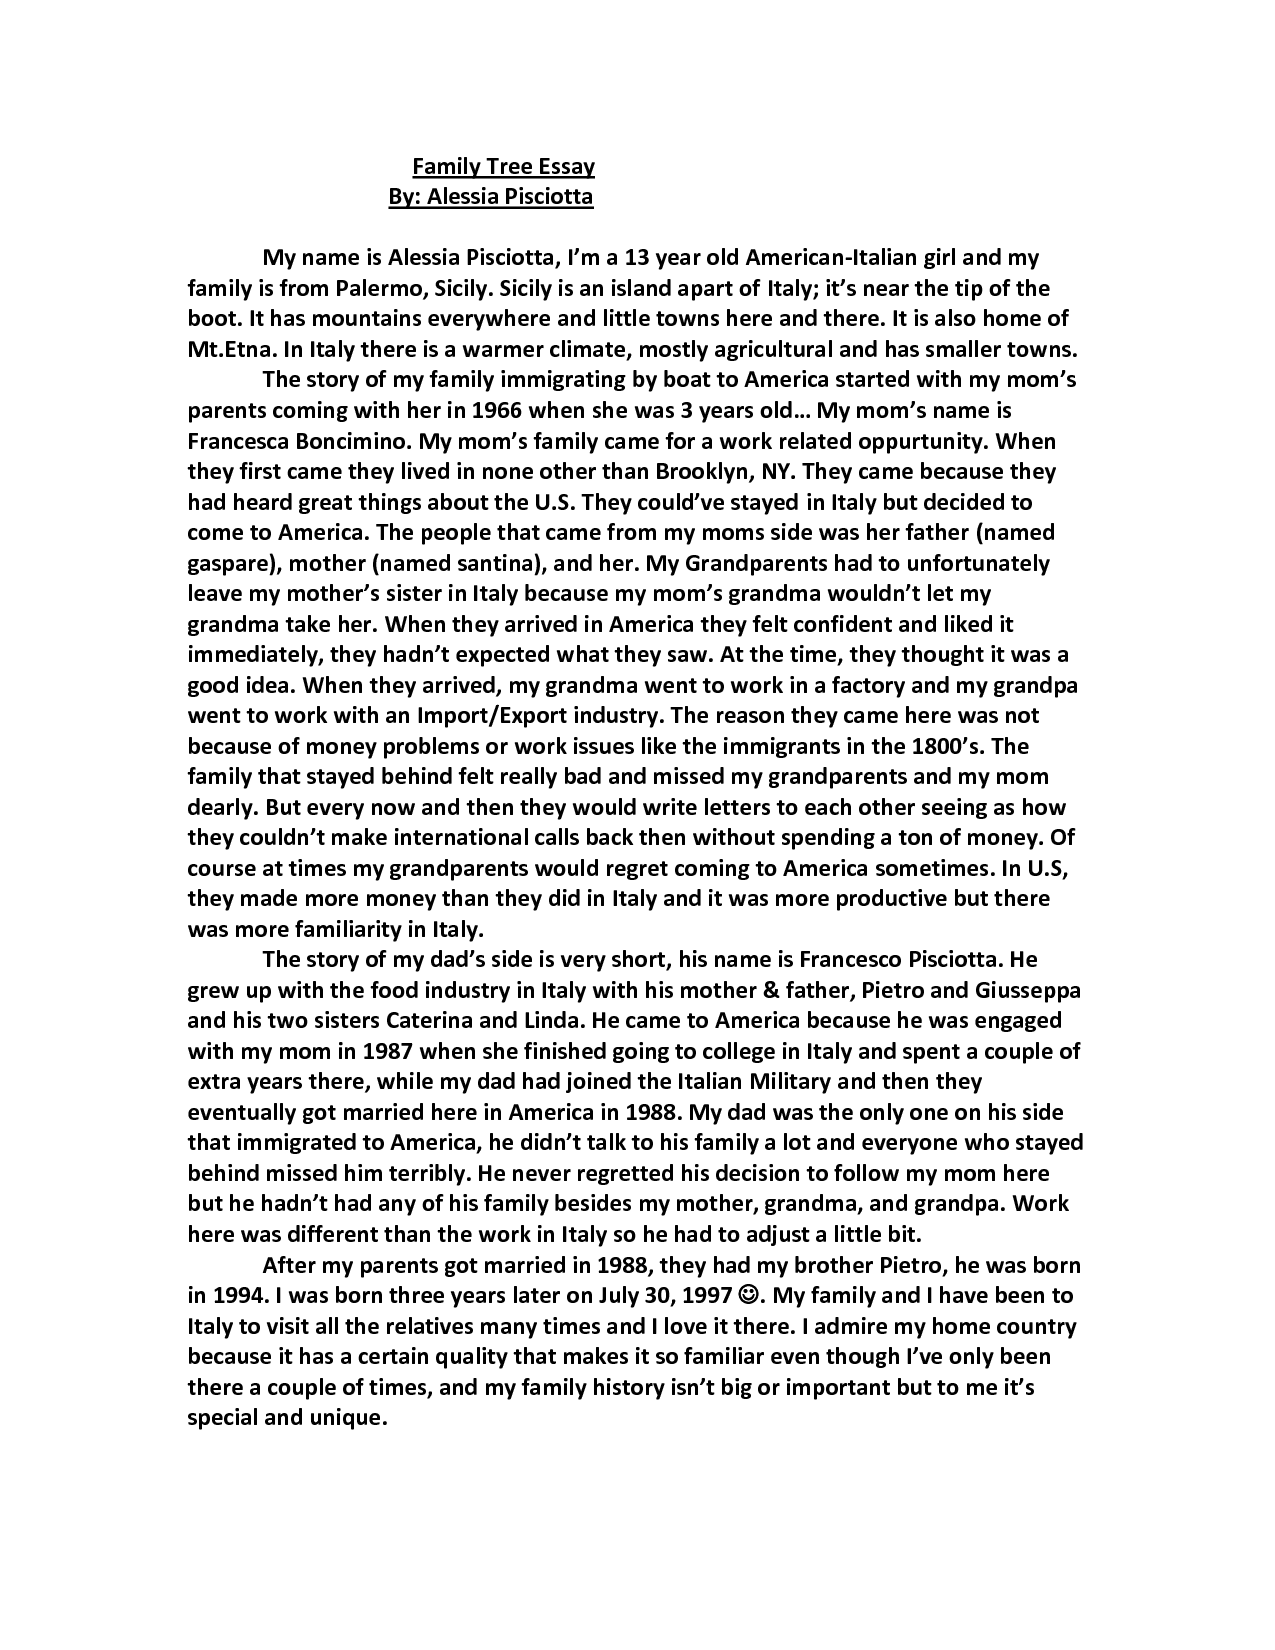 003 Essay Example Po4axrnoni About Shocking Family History Influence On Values First And Foremost Full